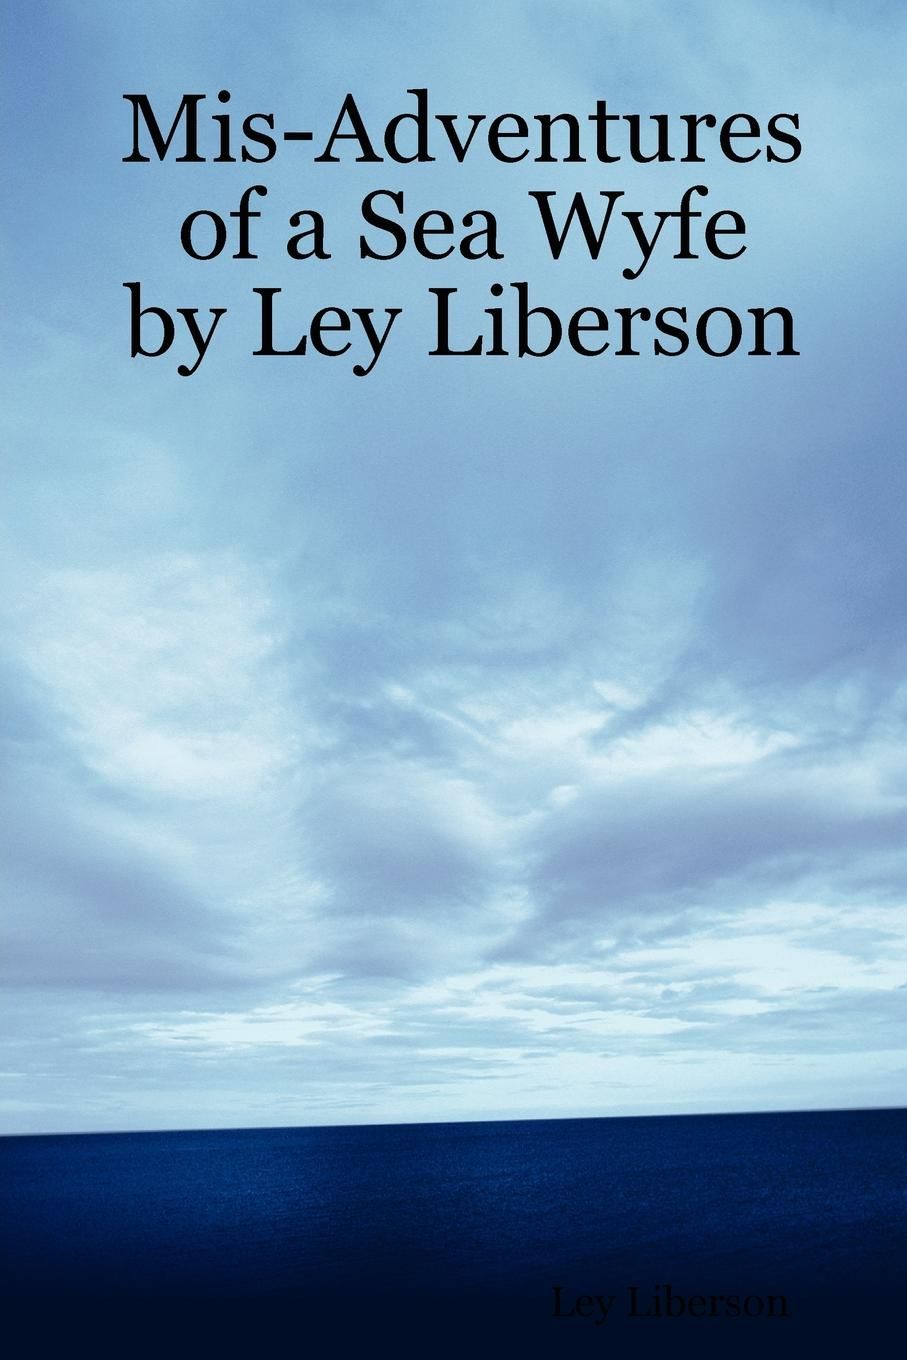 Ley Liberson MIS-Adventures of a Sea Wyfe by Ley Liberson